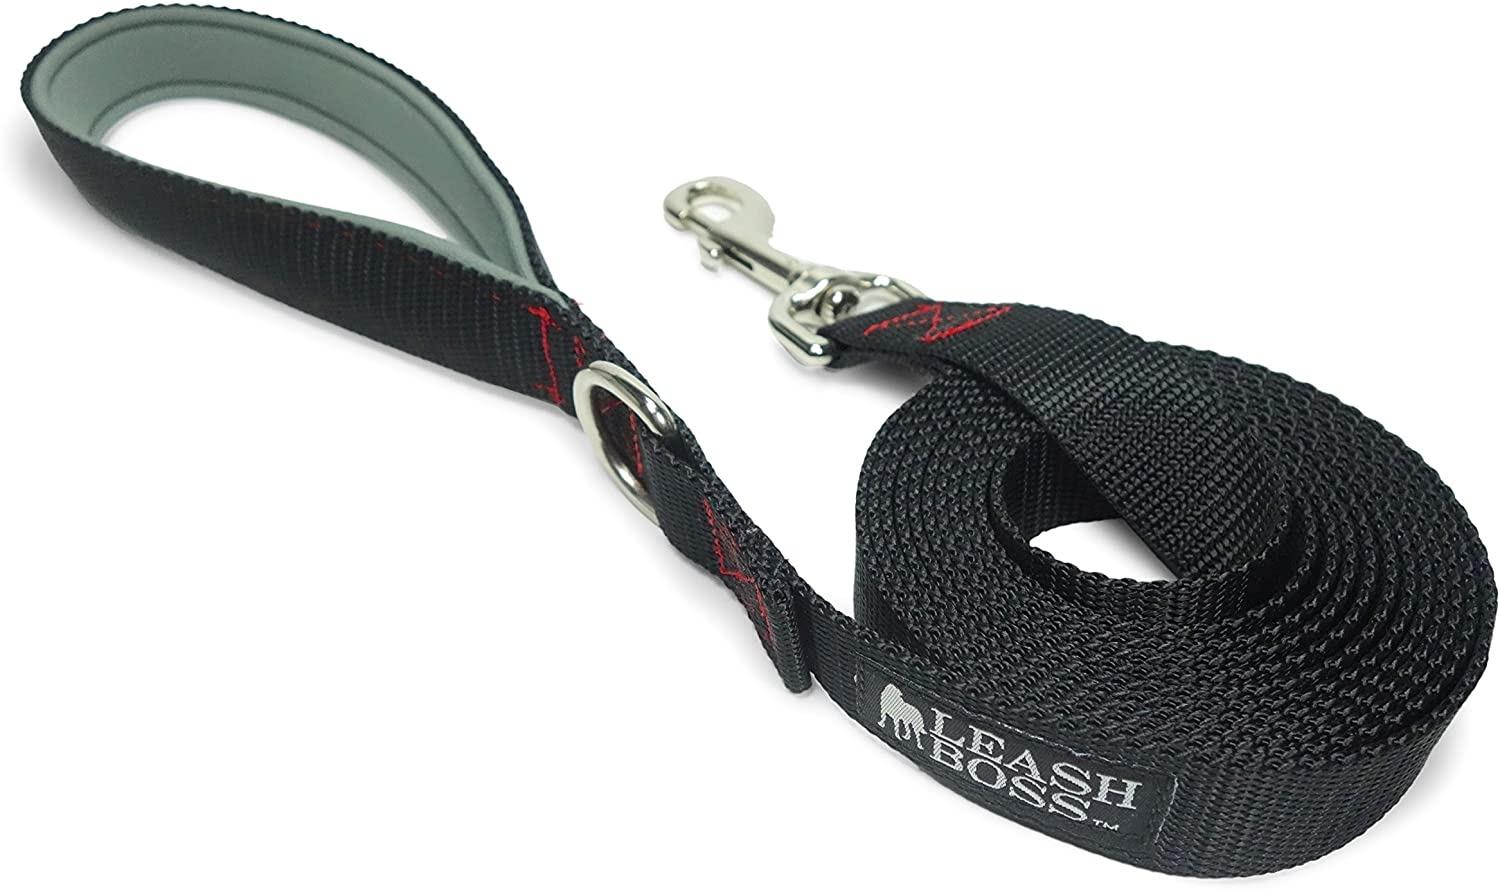 LeashBoss 15 Foot Dog Leash